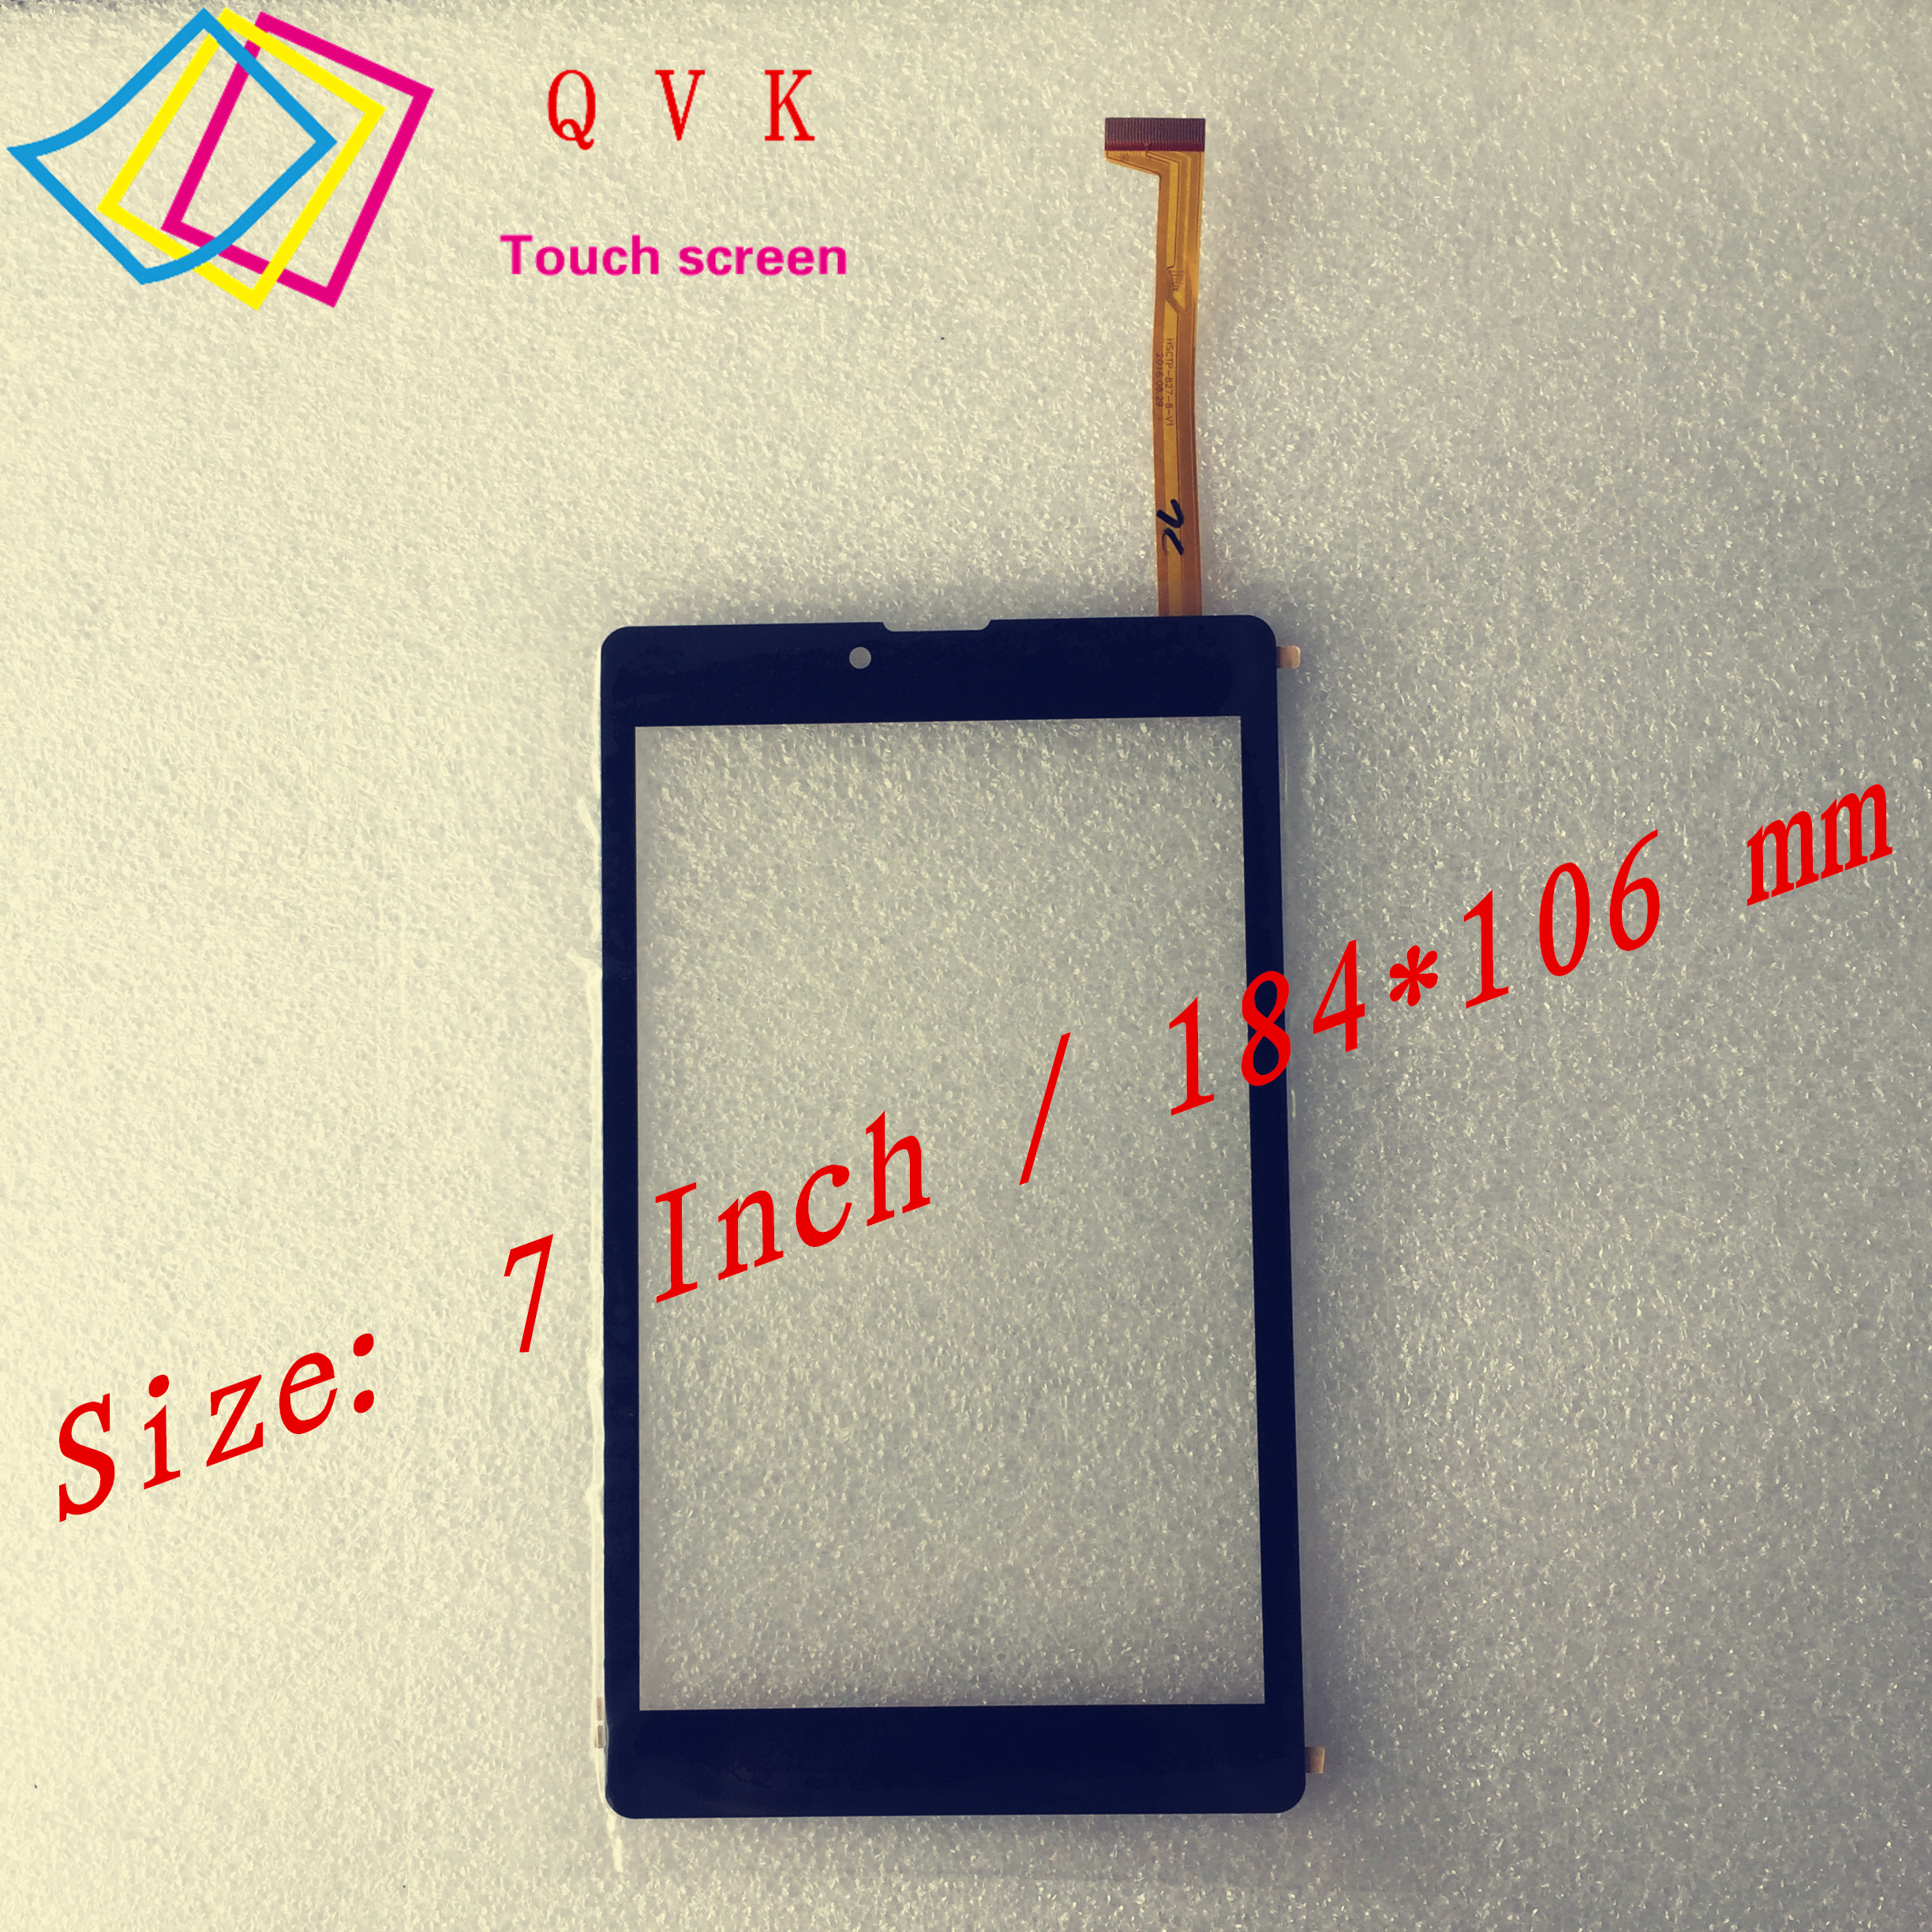 10PCS  New 7 Inch for IRBIS TZ791 4G TZ791B TZ791w tablet pc capacitive touch screen glass digitizer panel Free shipping original 7 inch 163 97mm hd 1024 600 lcd for cube u25gt tablet pc lcd screen display panel glass free shipping